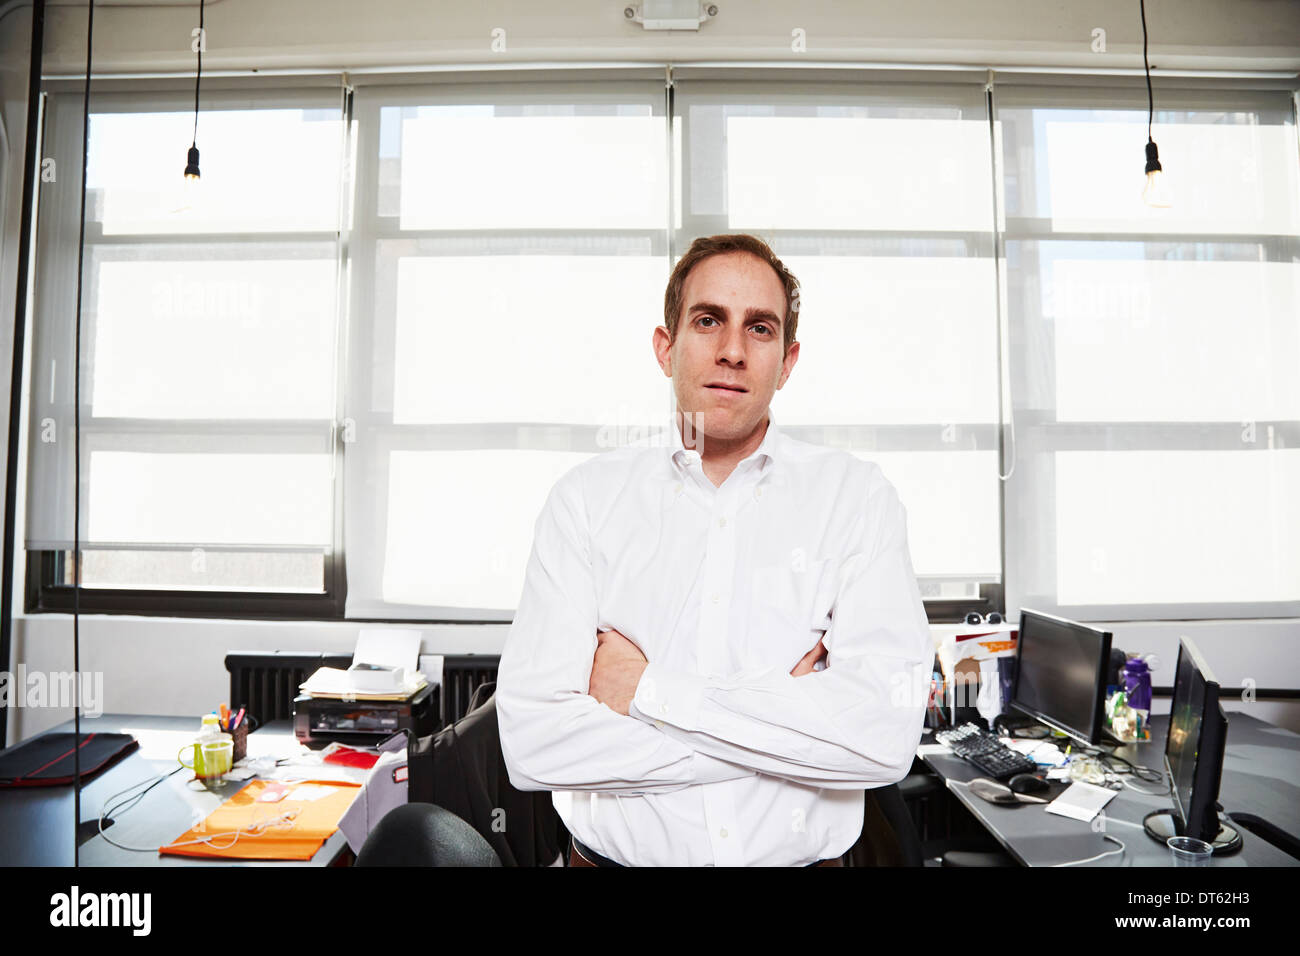 Mid adult man wearing white shirt in office Photo Stock